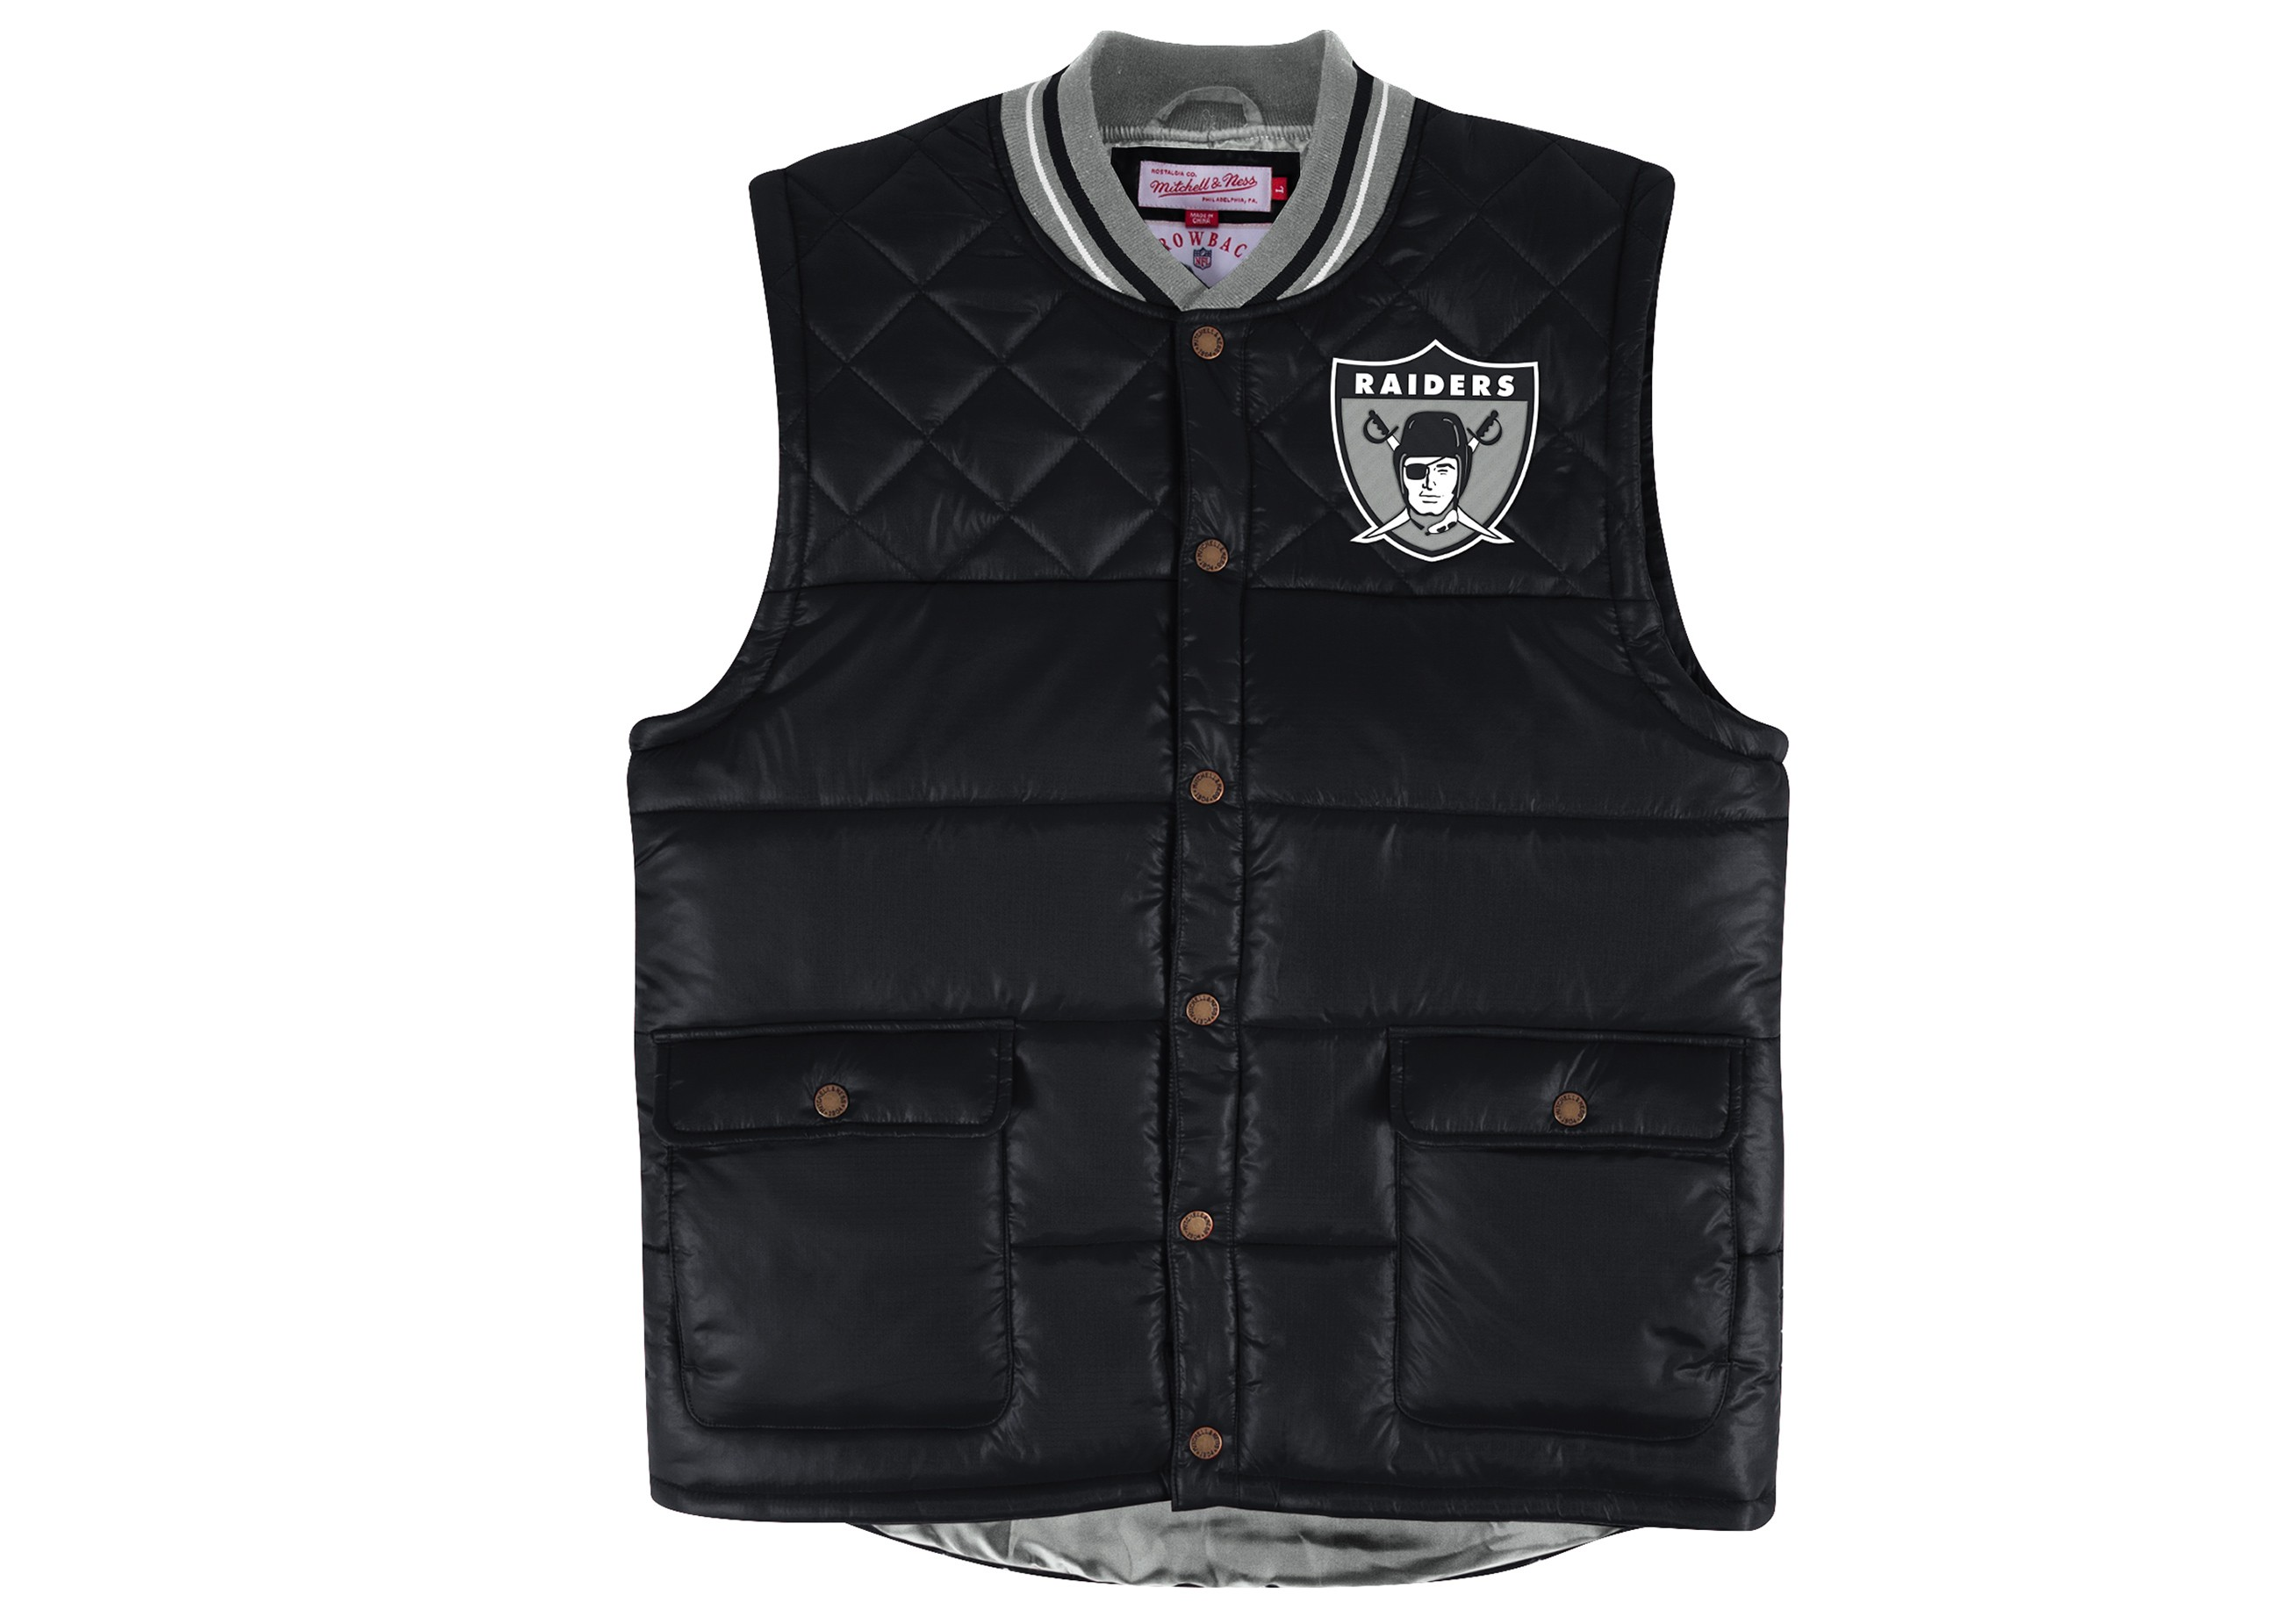 Raider Starter Jacket | Raiders Team Store | Raiders Letterman Jacket